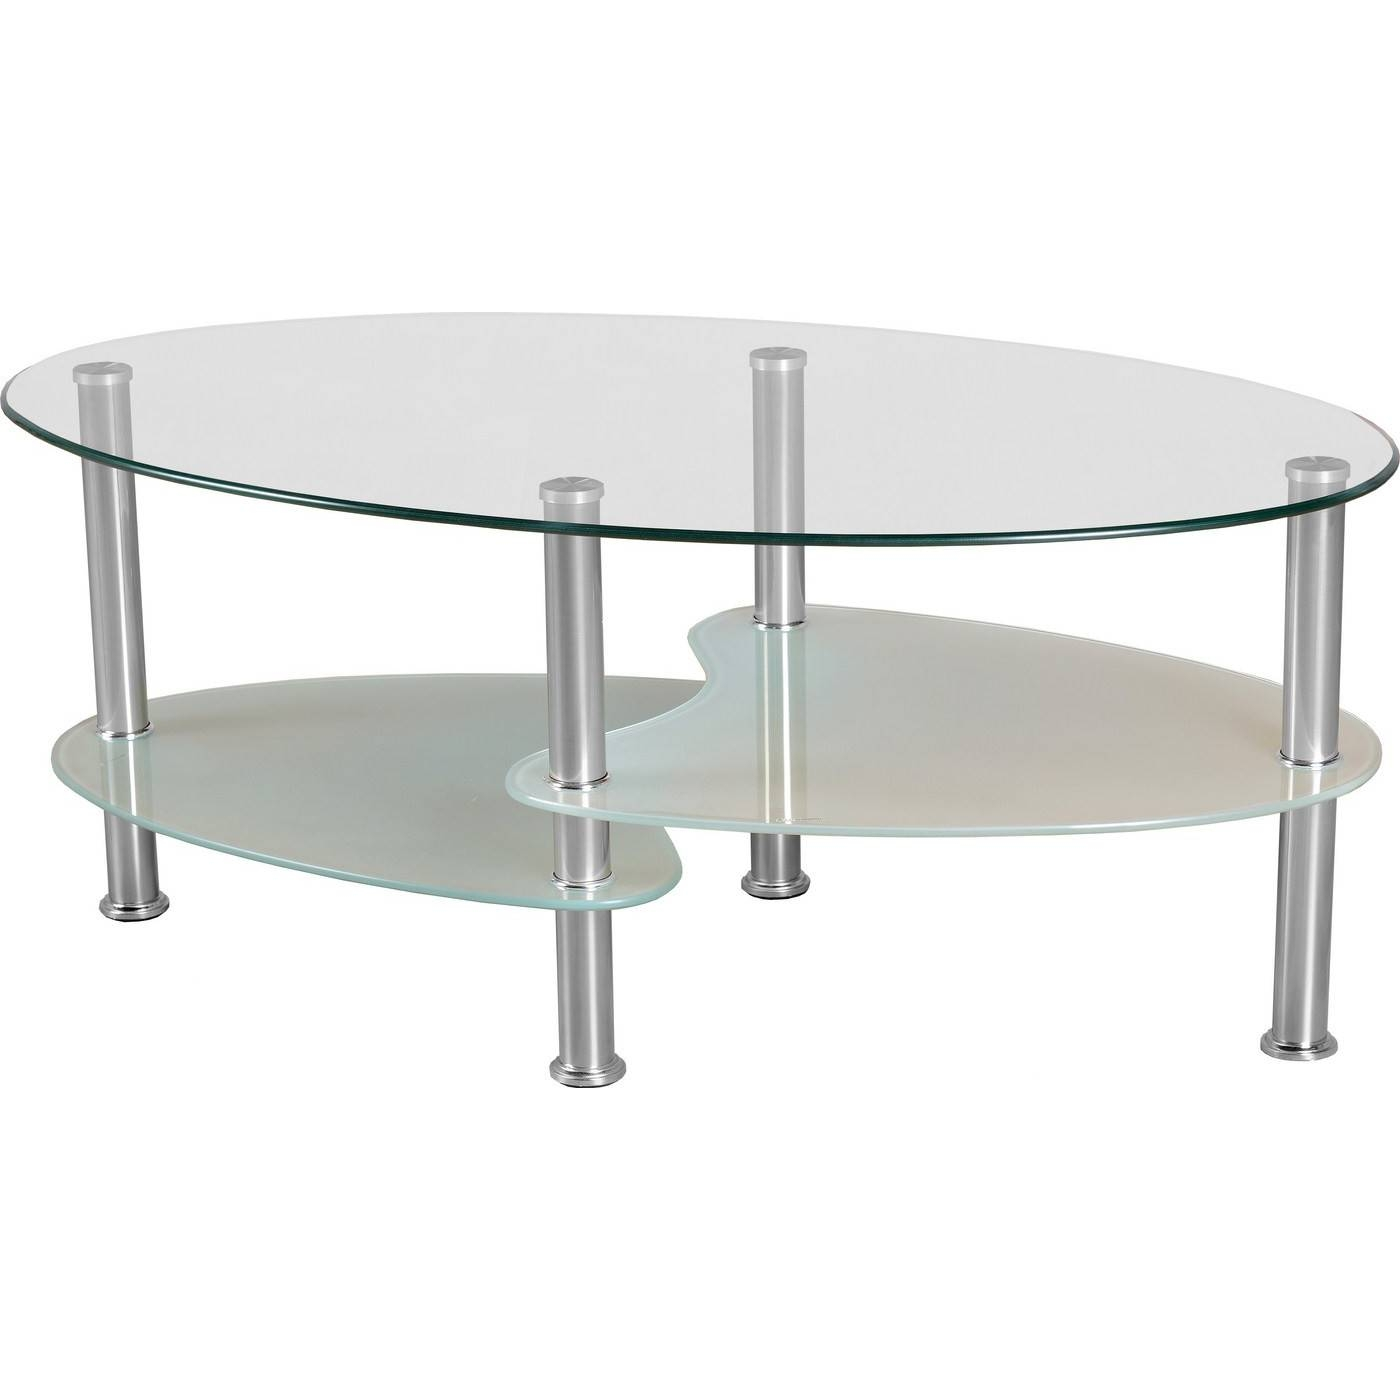 Oval Glass Coffee Table Modern Coffee Tables Oval Glass And Wood inside Oval Glass Coffee Tables (Image 22 of 30)